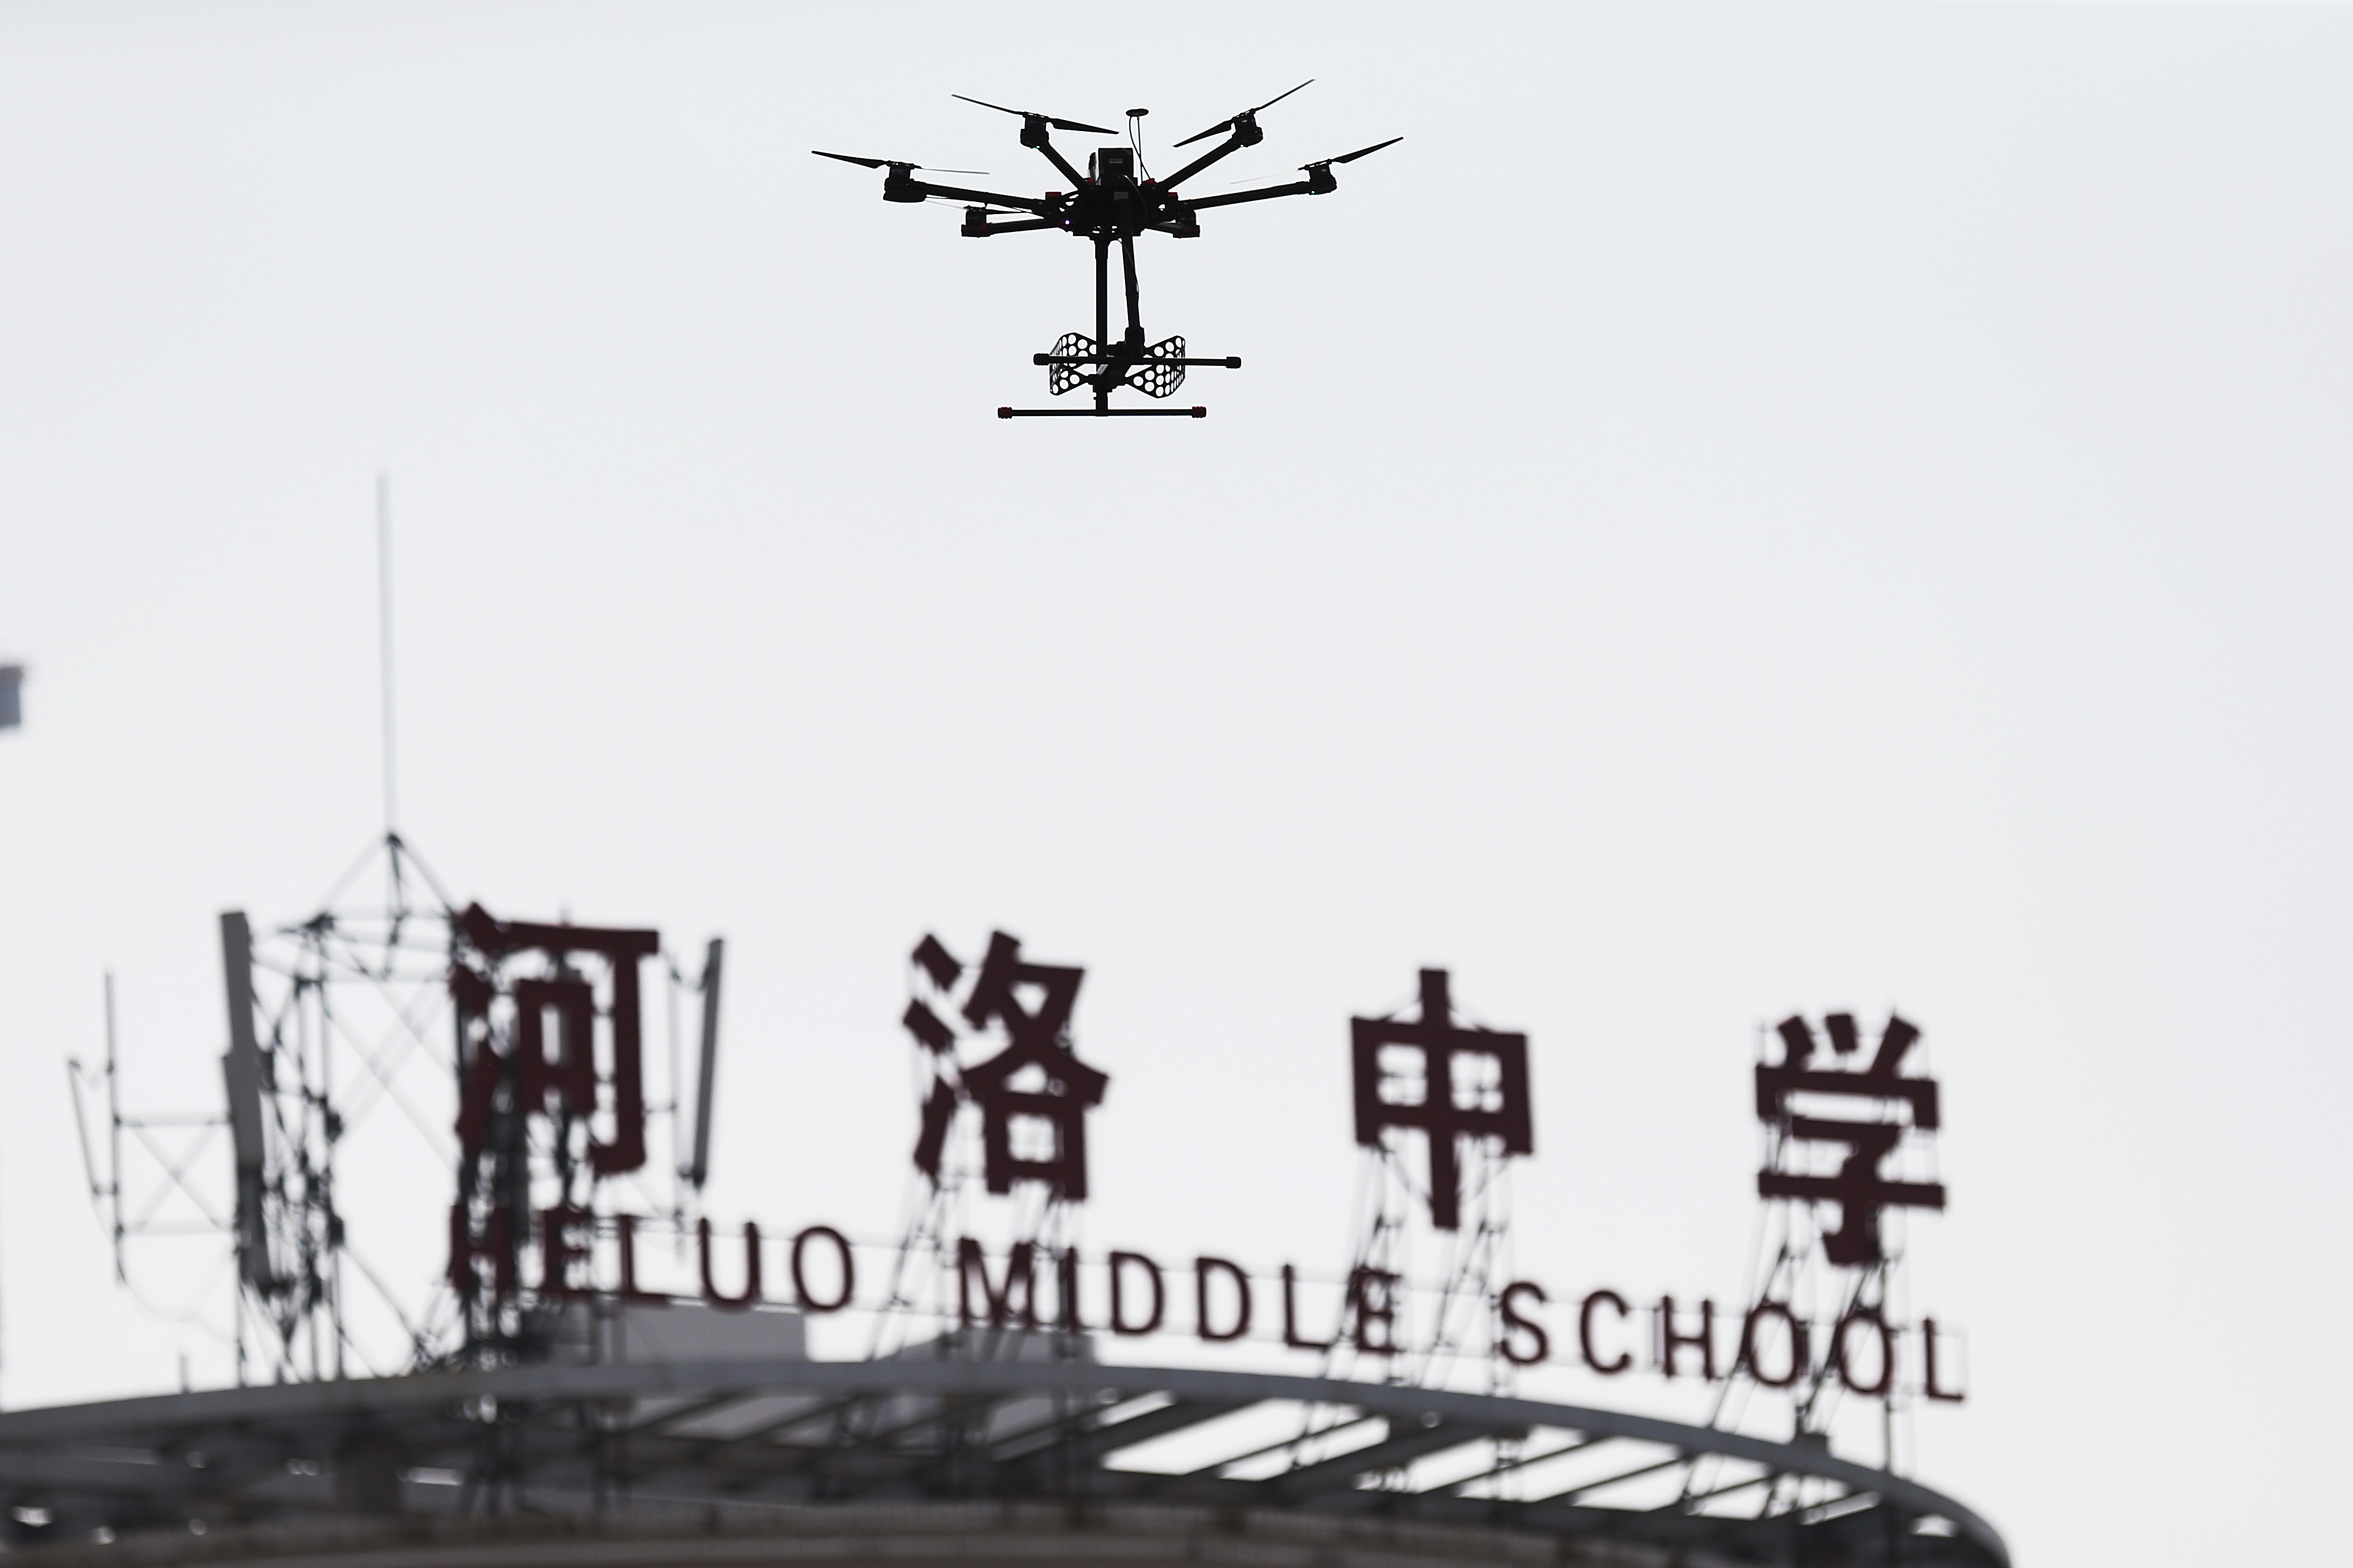 An unmanned aerial vehicle (UAV), or drone, used to detect radio signals to prevent student from cheating, hovers over an exam site during the first examination of the 2015 National College Entrance Exam, also known as Gaokao, at Heluo Middle School in Luoyang city, central China's Henan province, 7 June 2015.